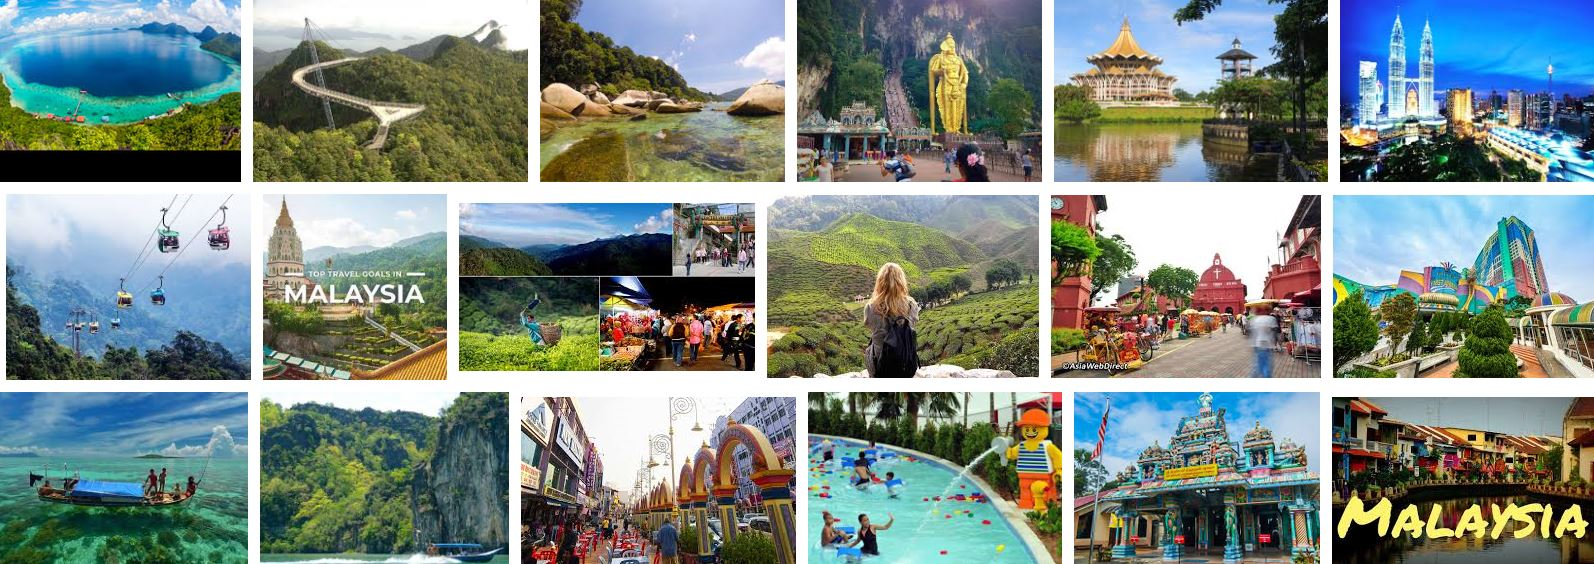 8 Best Things to Do in Malaysia